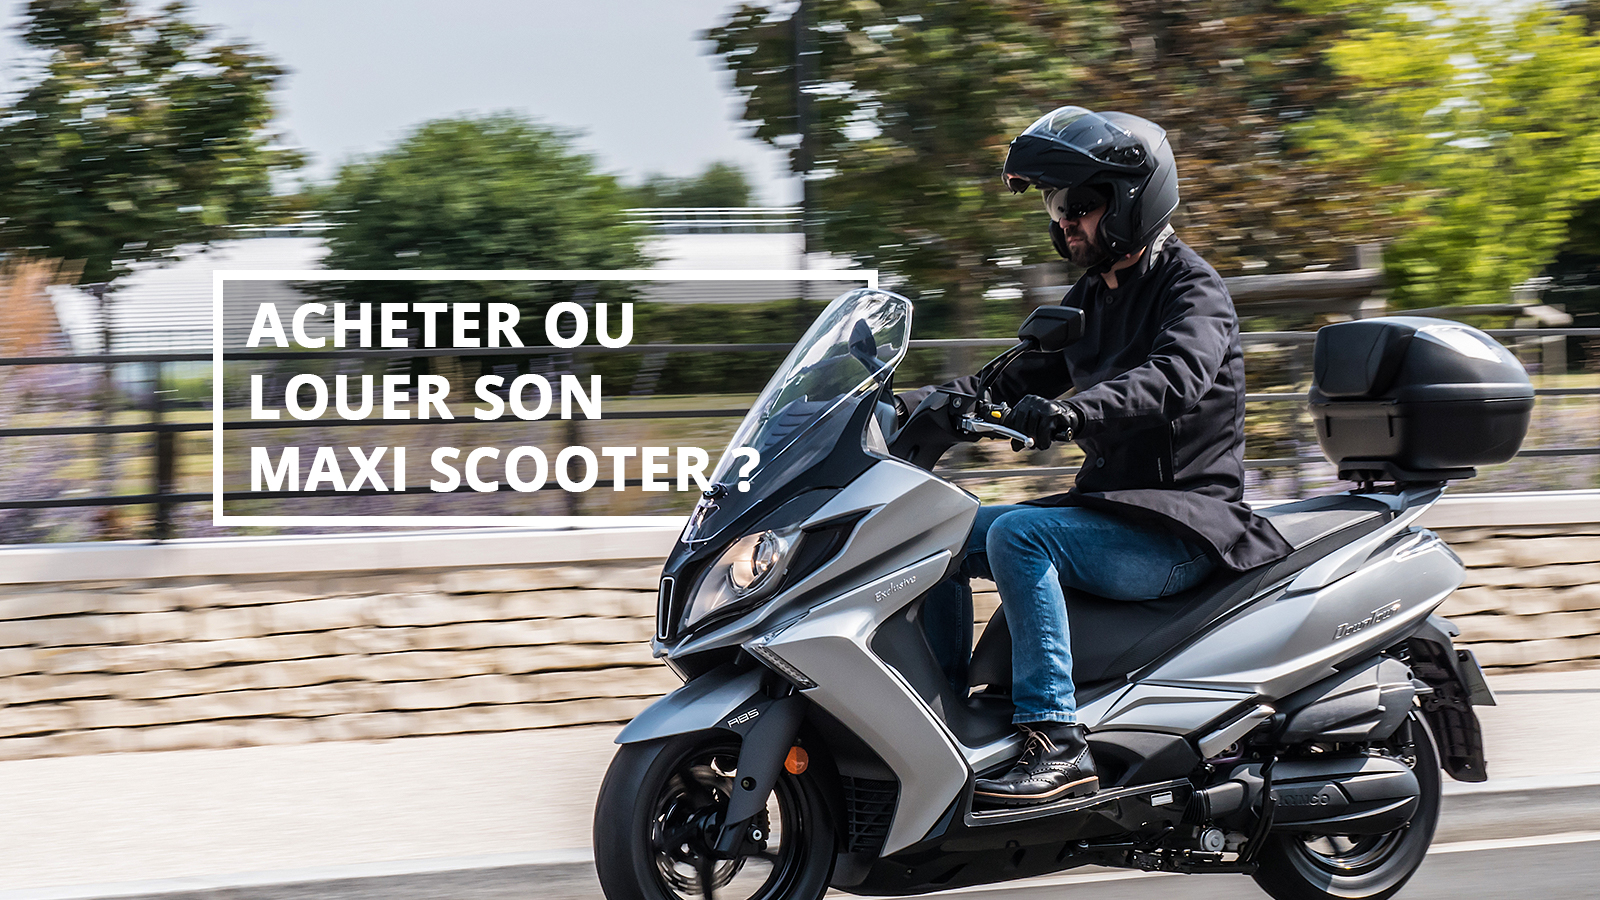 acheter-louer-maxiscooter-featured